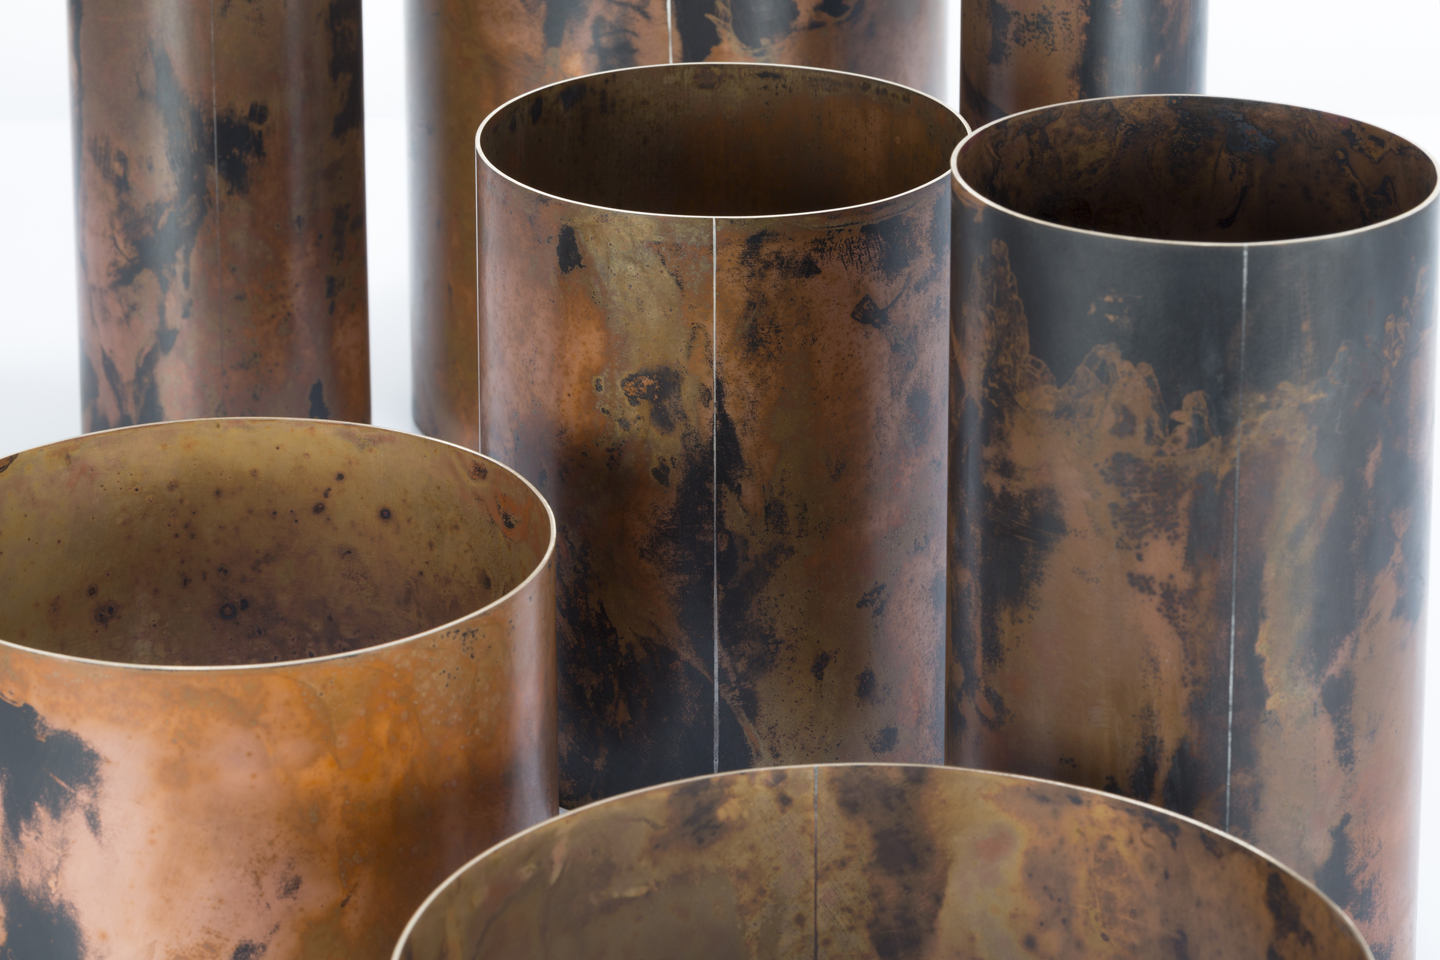 Juliette_Bigley_Cylinders_patinated_gilding_metal_2018_6.JPG